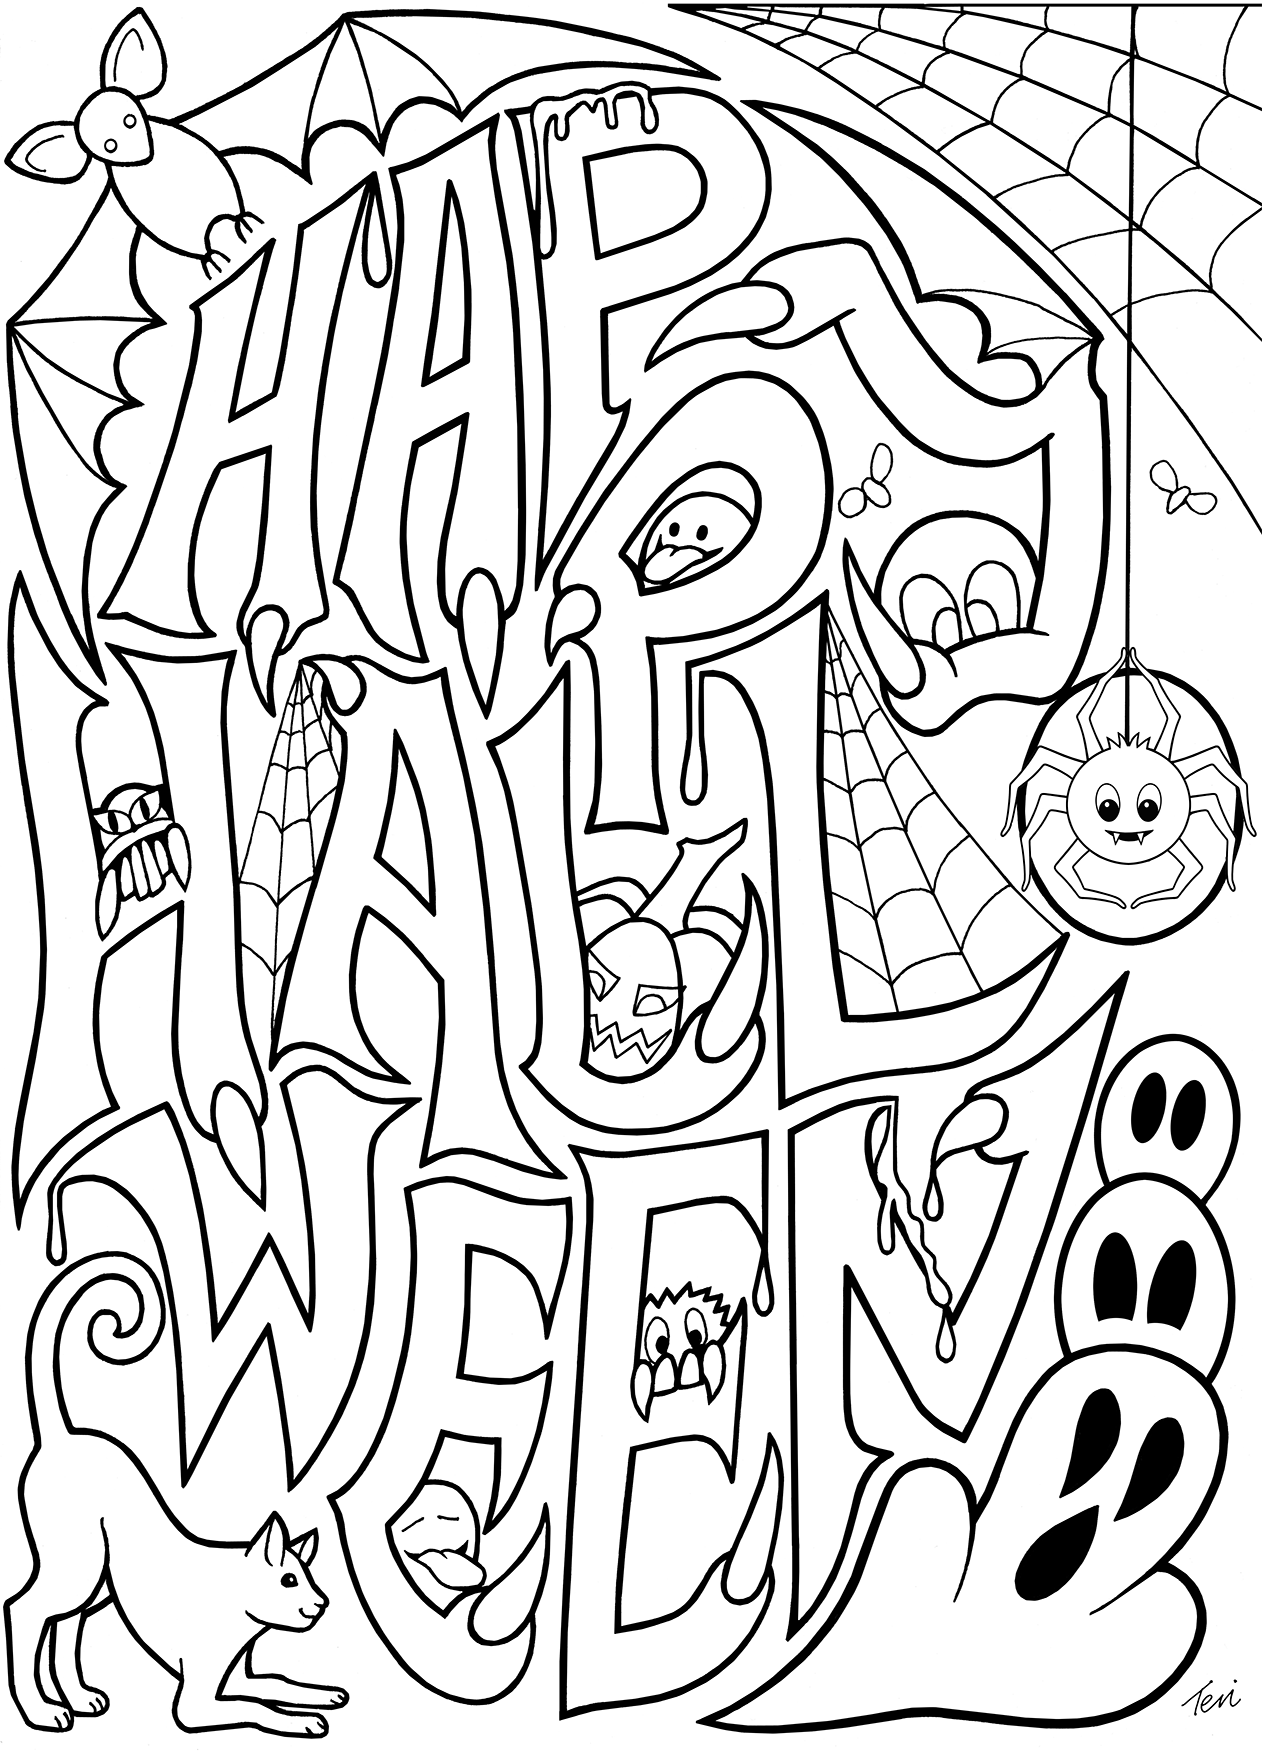 coloring pages for adults halloween halloween witch with pumpkins halloween adult coloring pages for pages halloween adults coloring